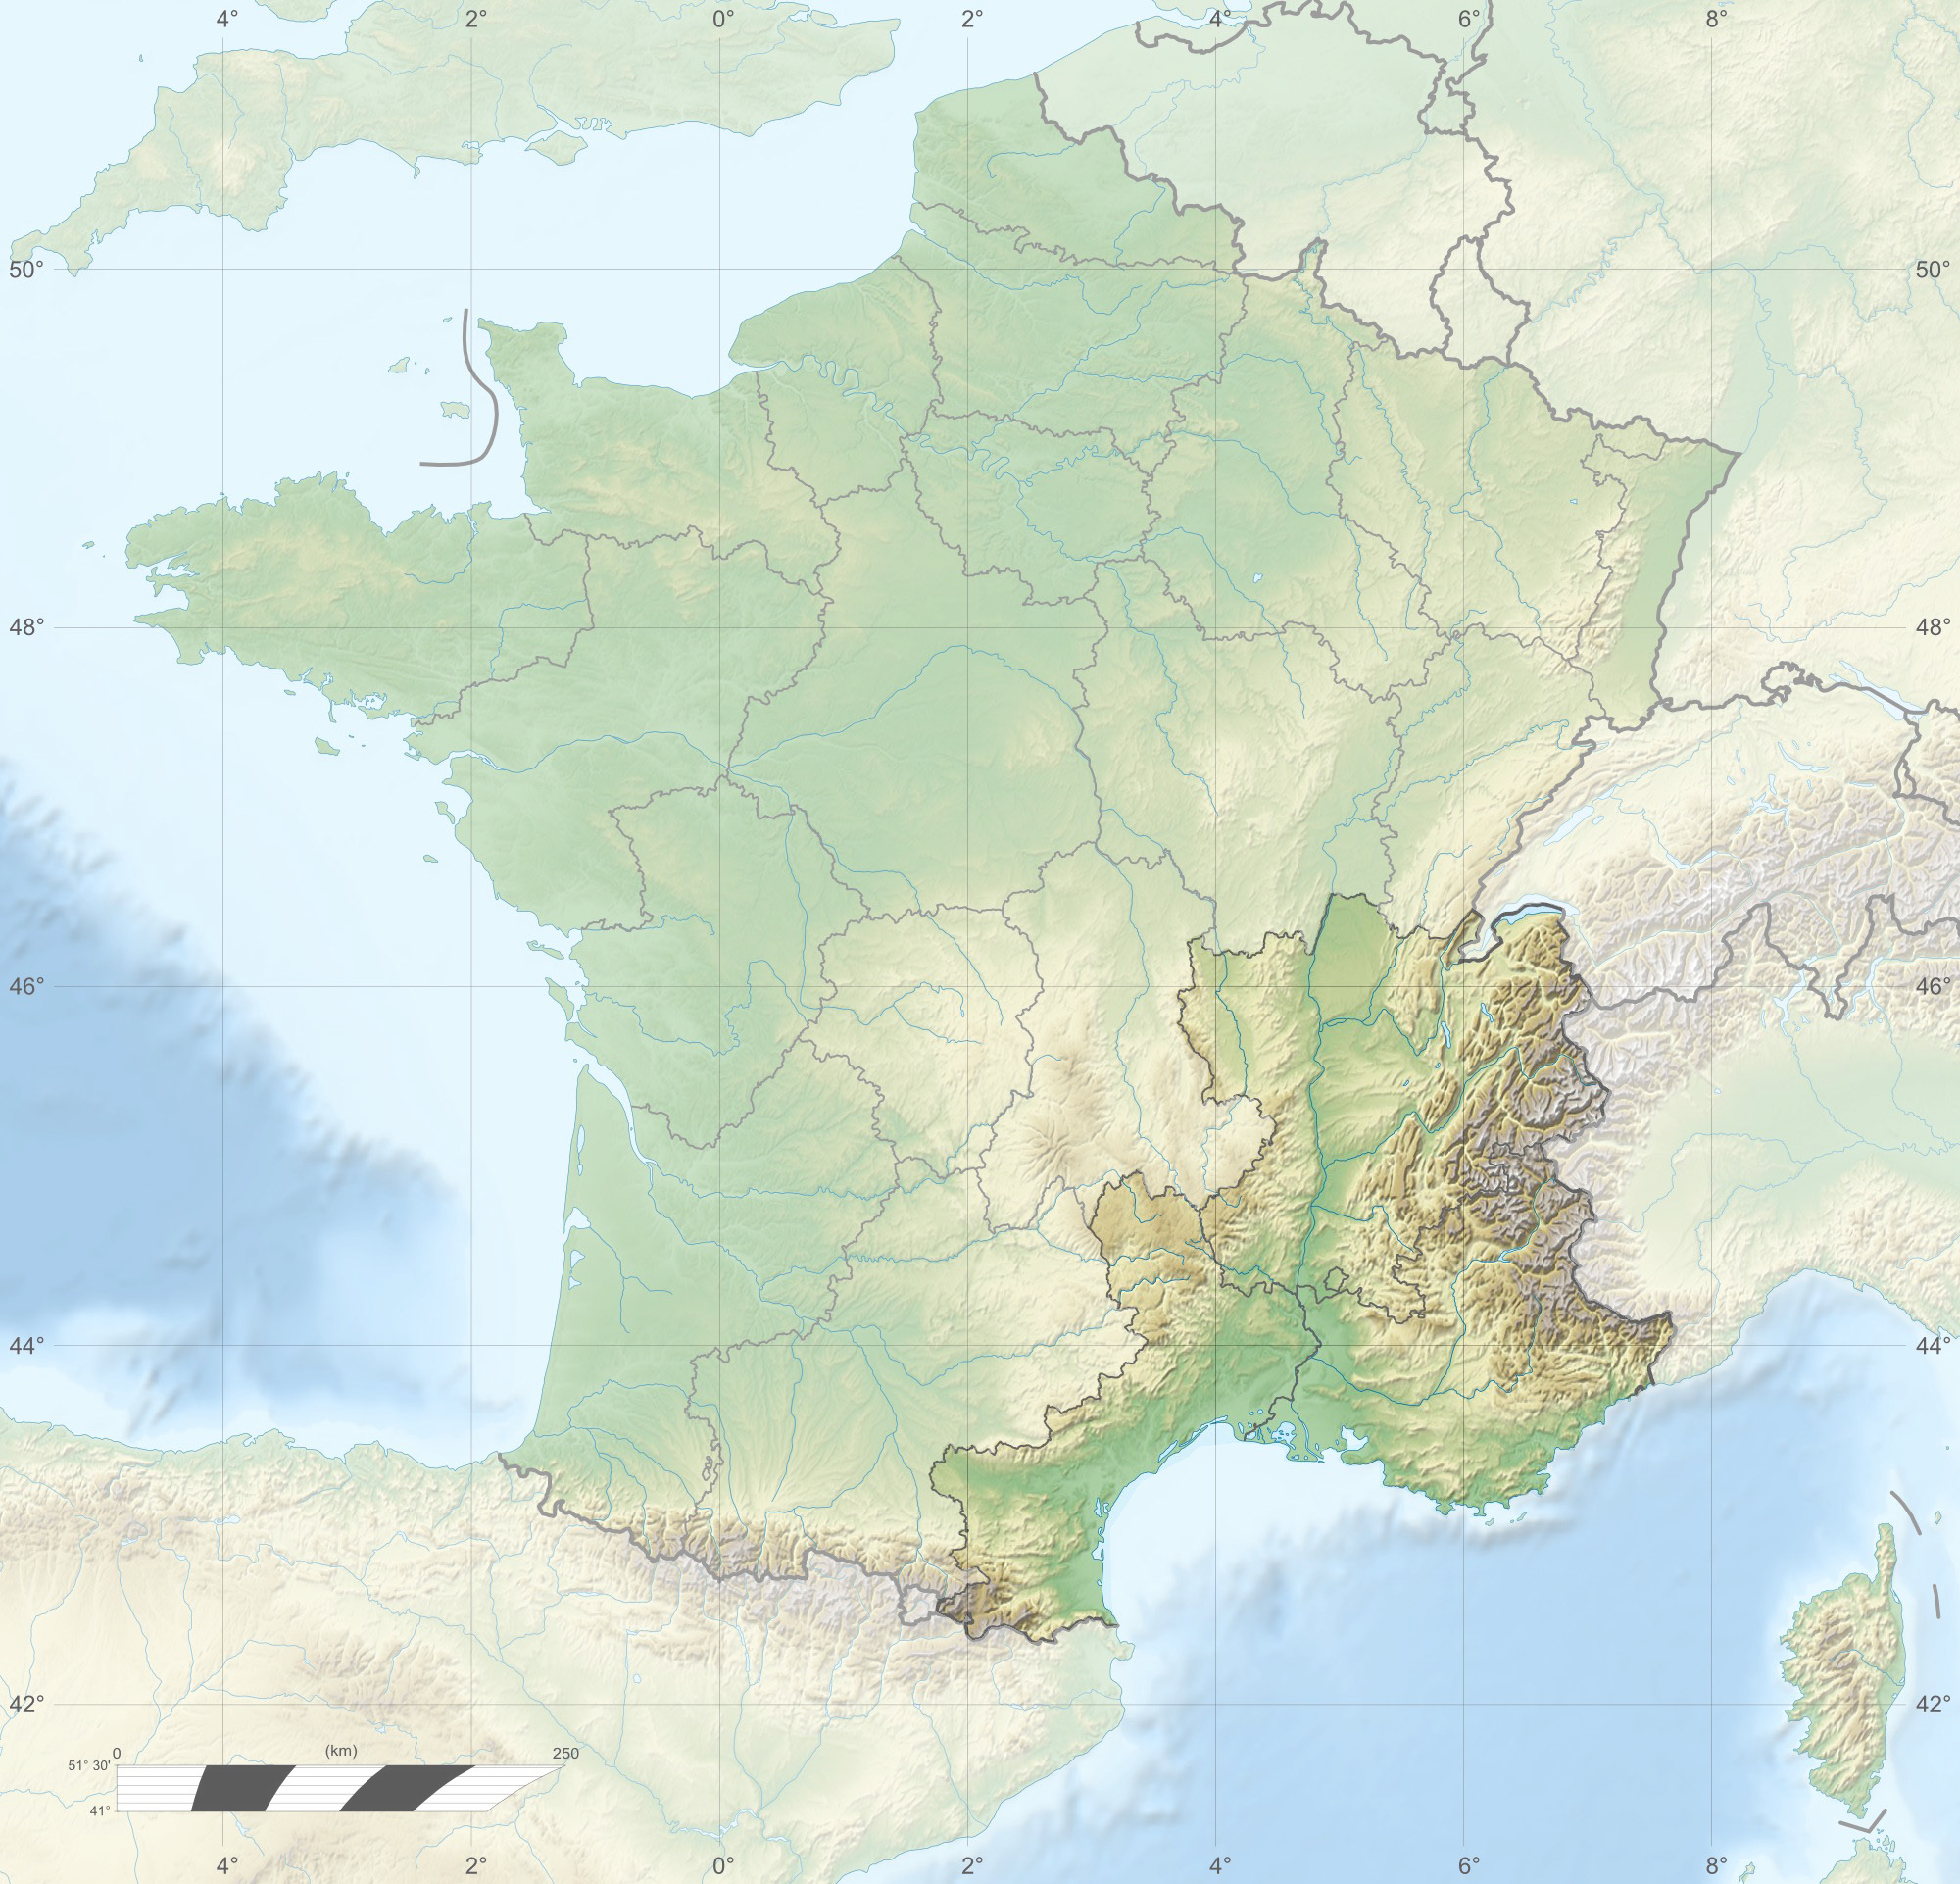 FileFrance relief location map South East highlightedpng